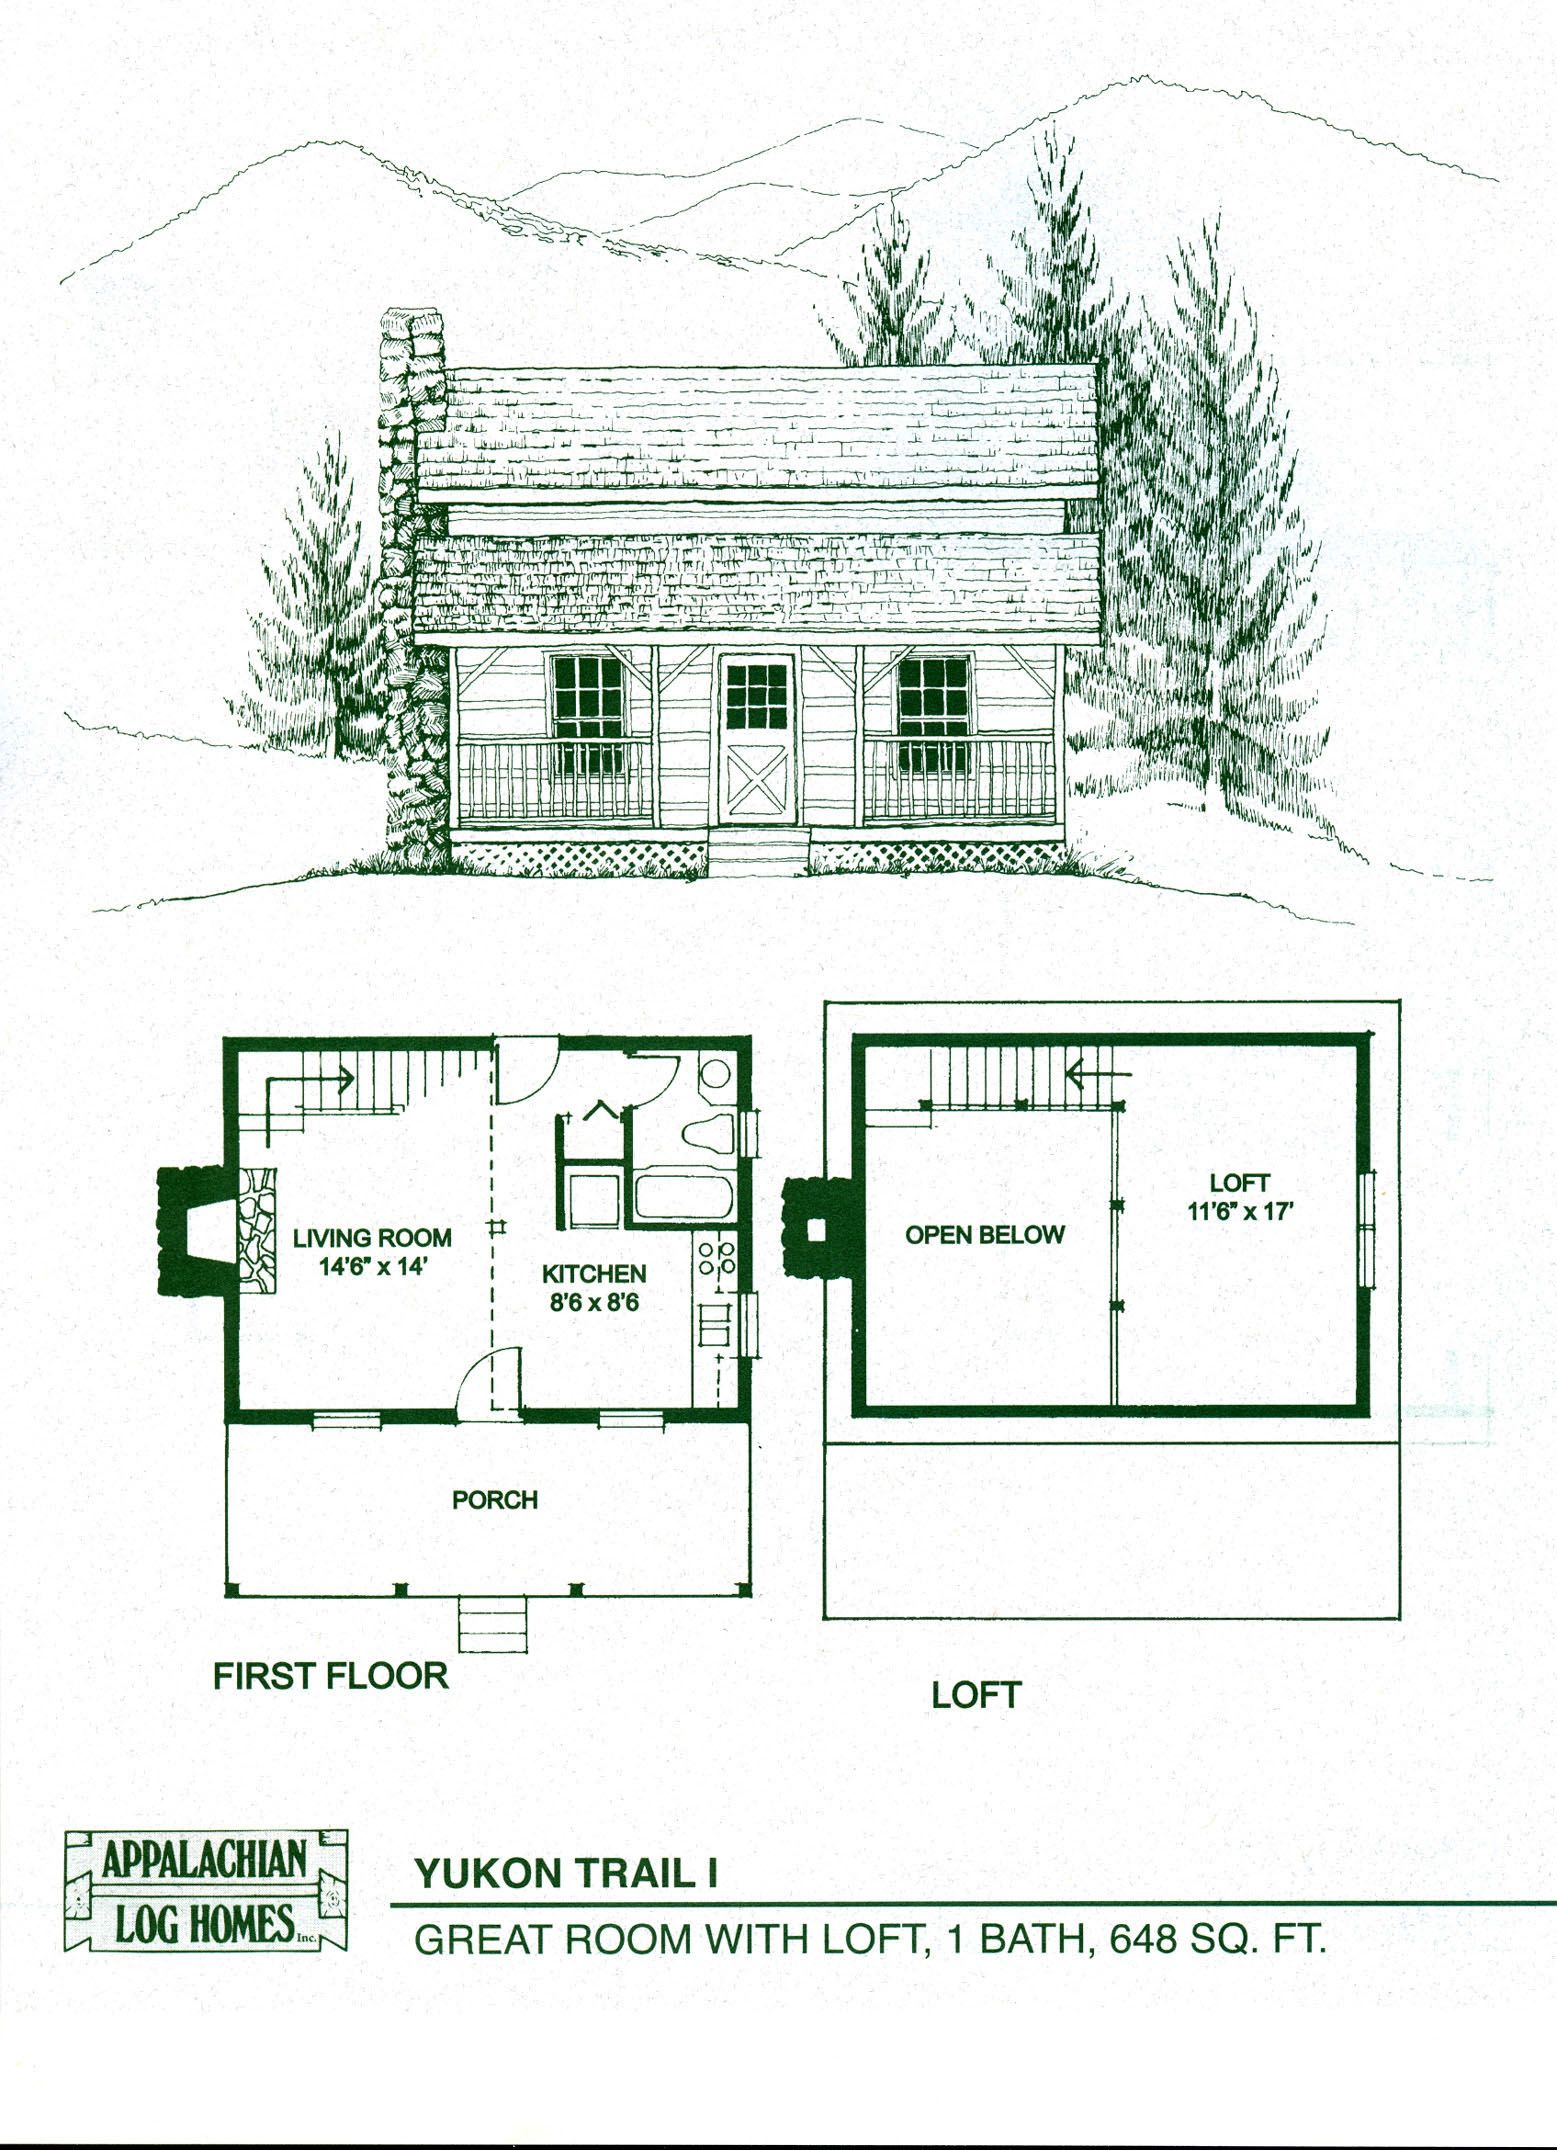 Log home floor plans log cabin kits appalachian log Log cabins designs and floor plans